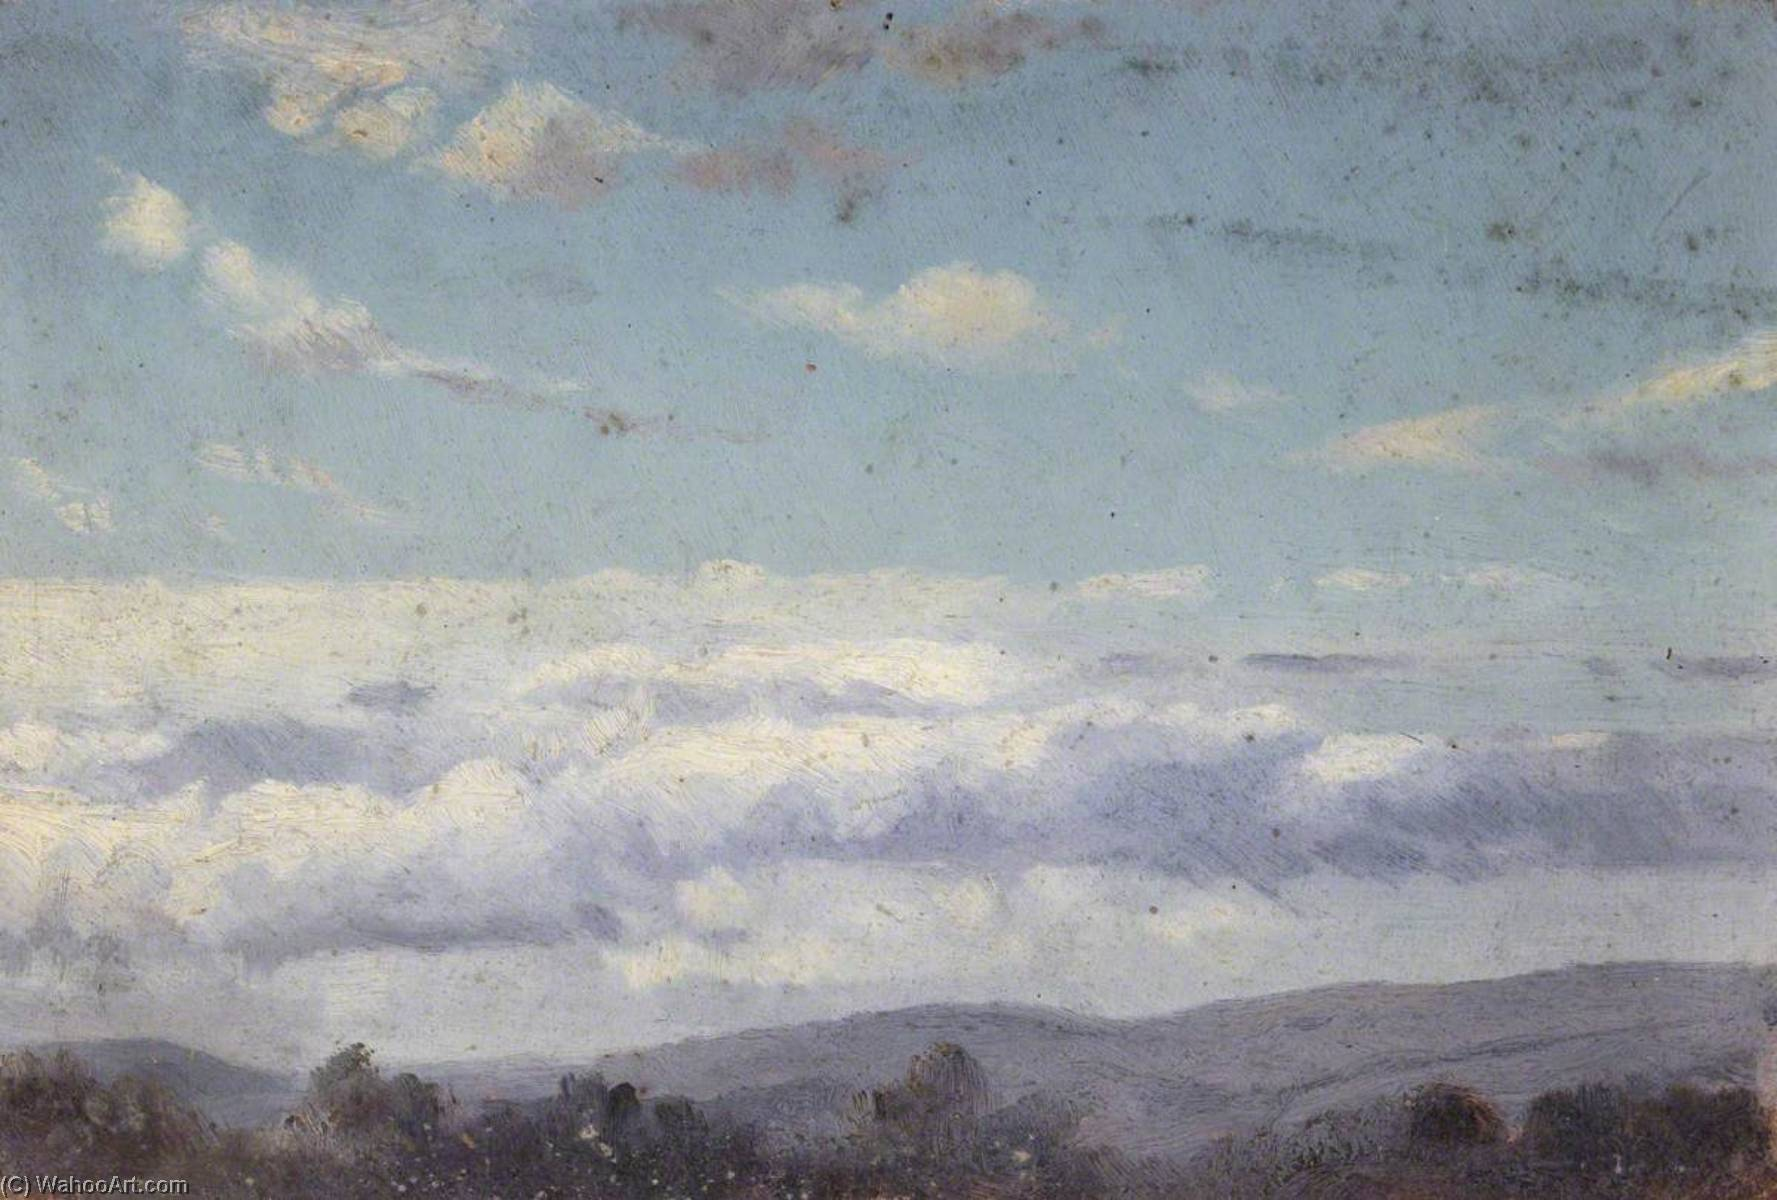 Forest Landscape with Clouds by Thomas Stuart Smith | Art Reproduction | WahooArt.com